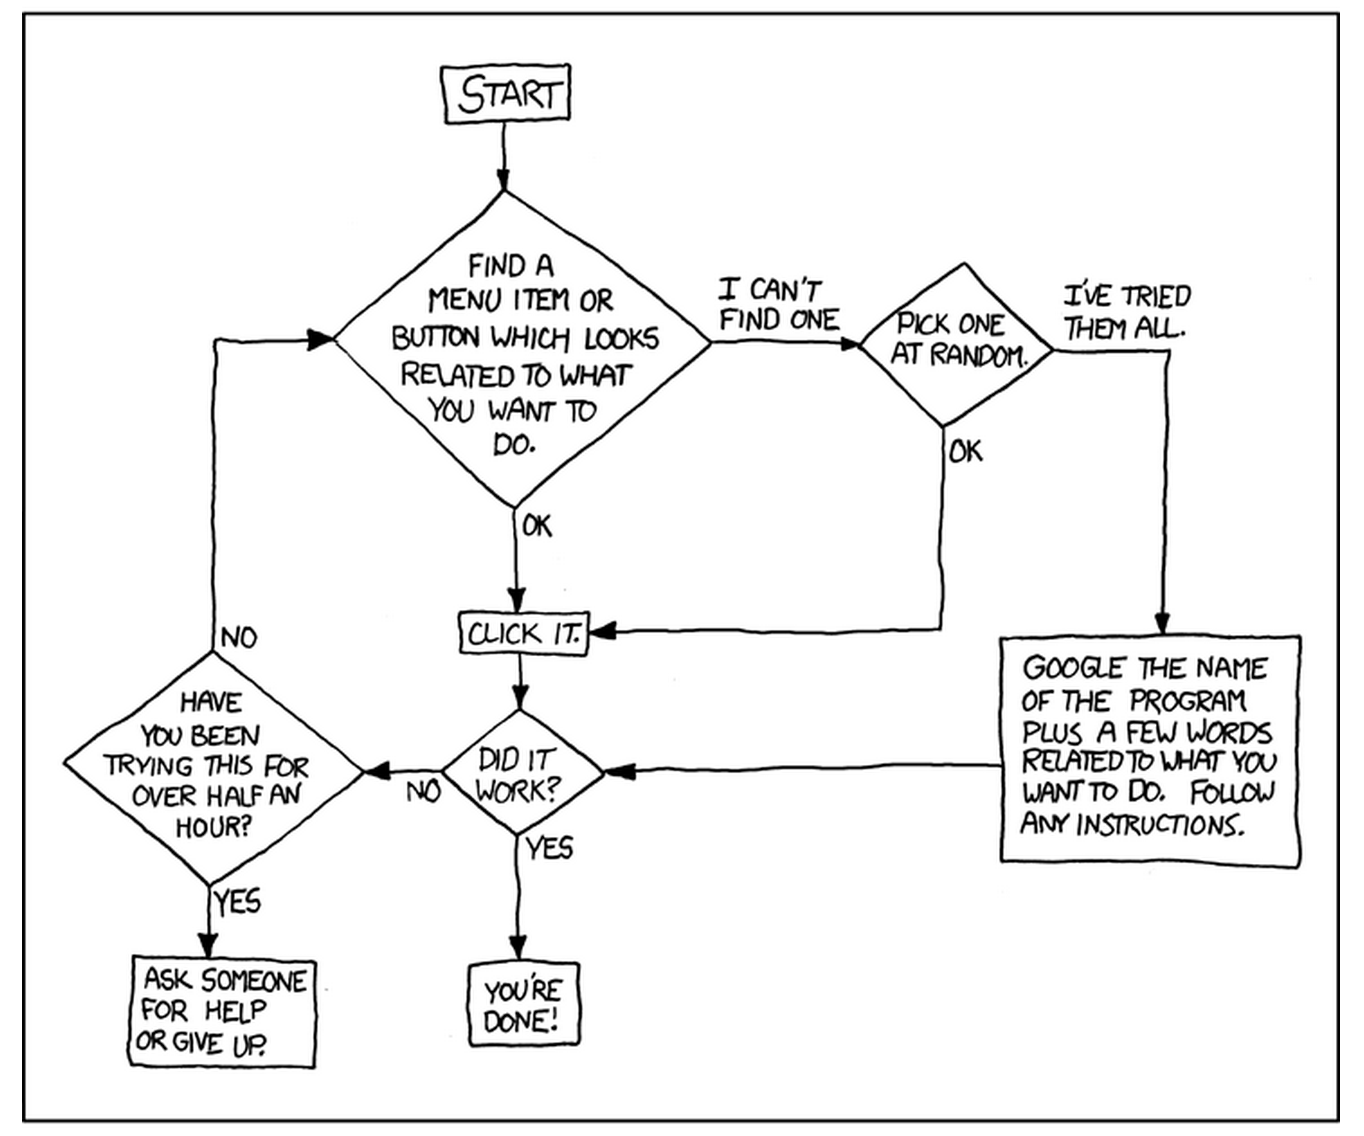 XKCD cartoon: tech solutions